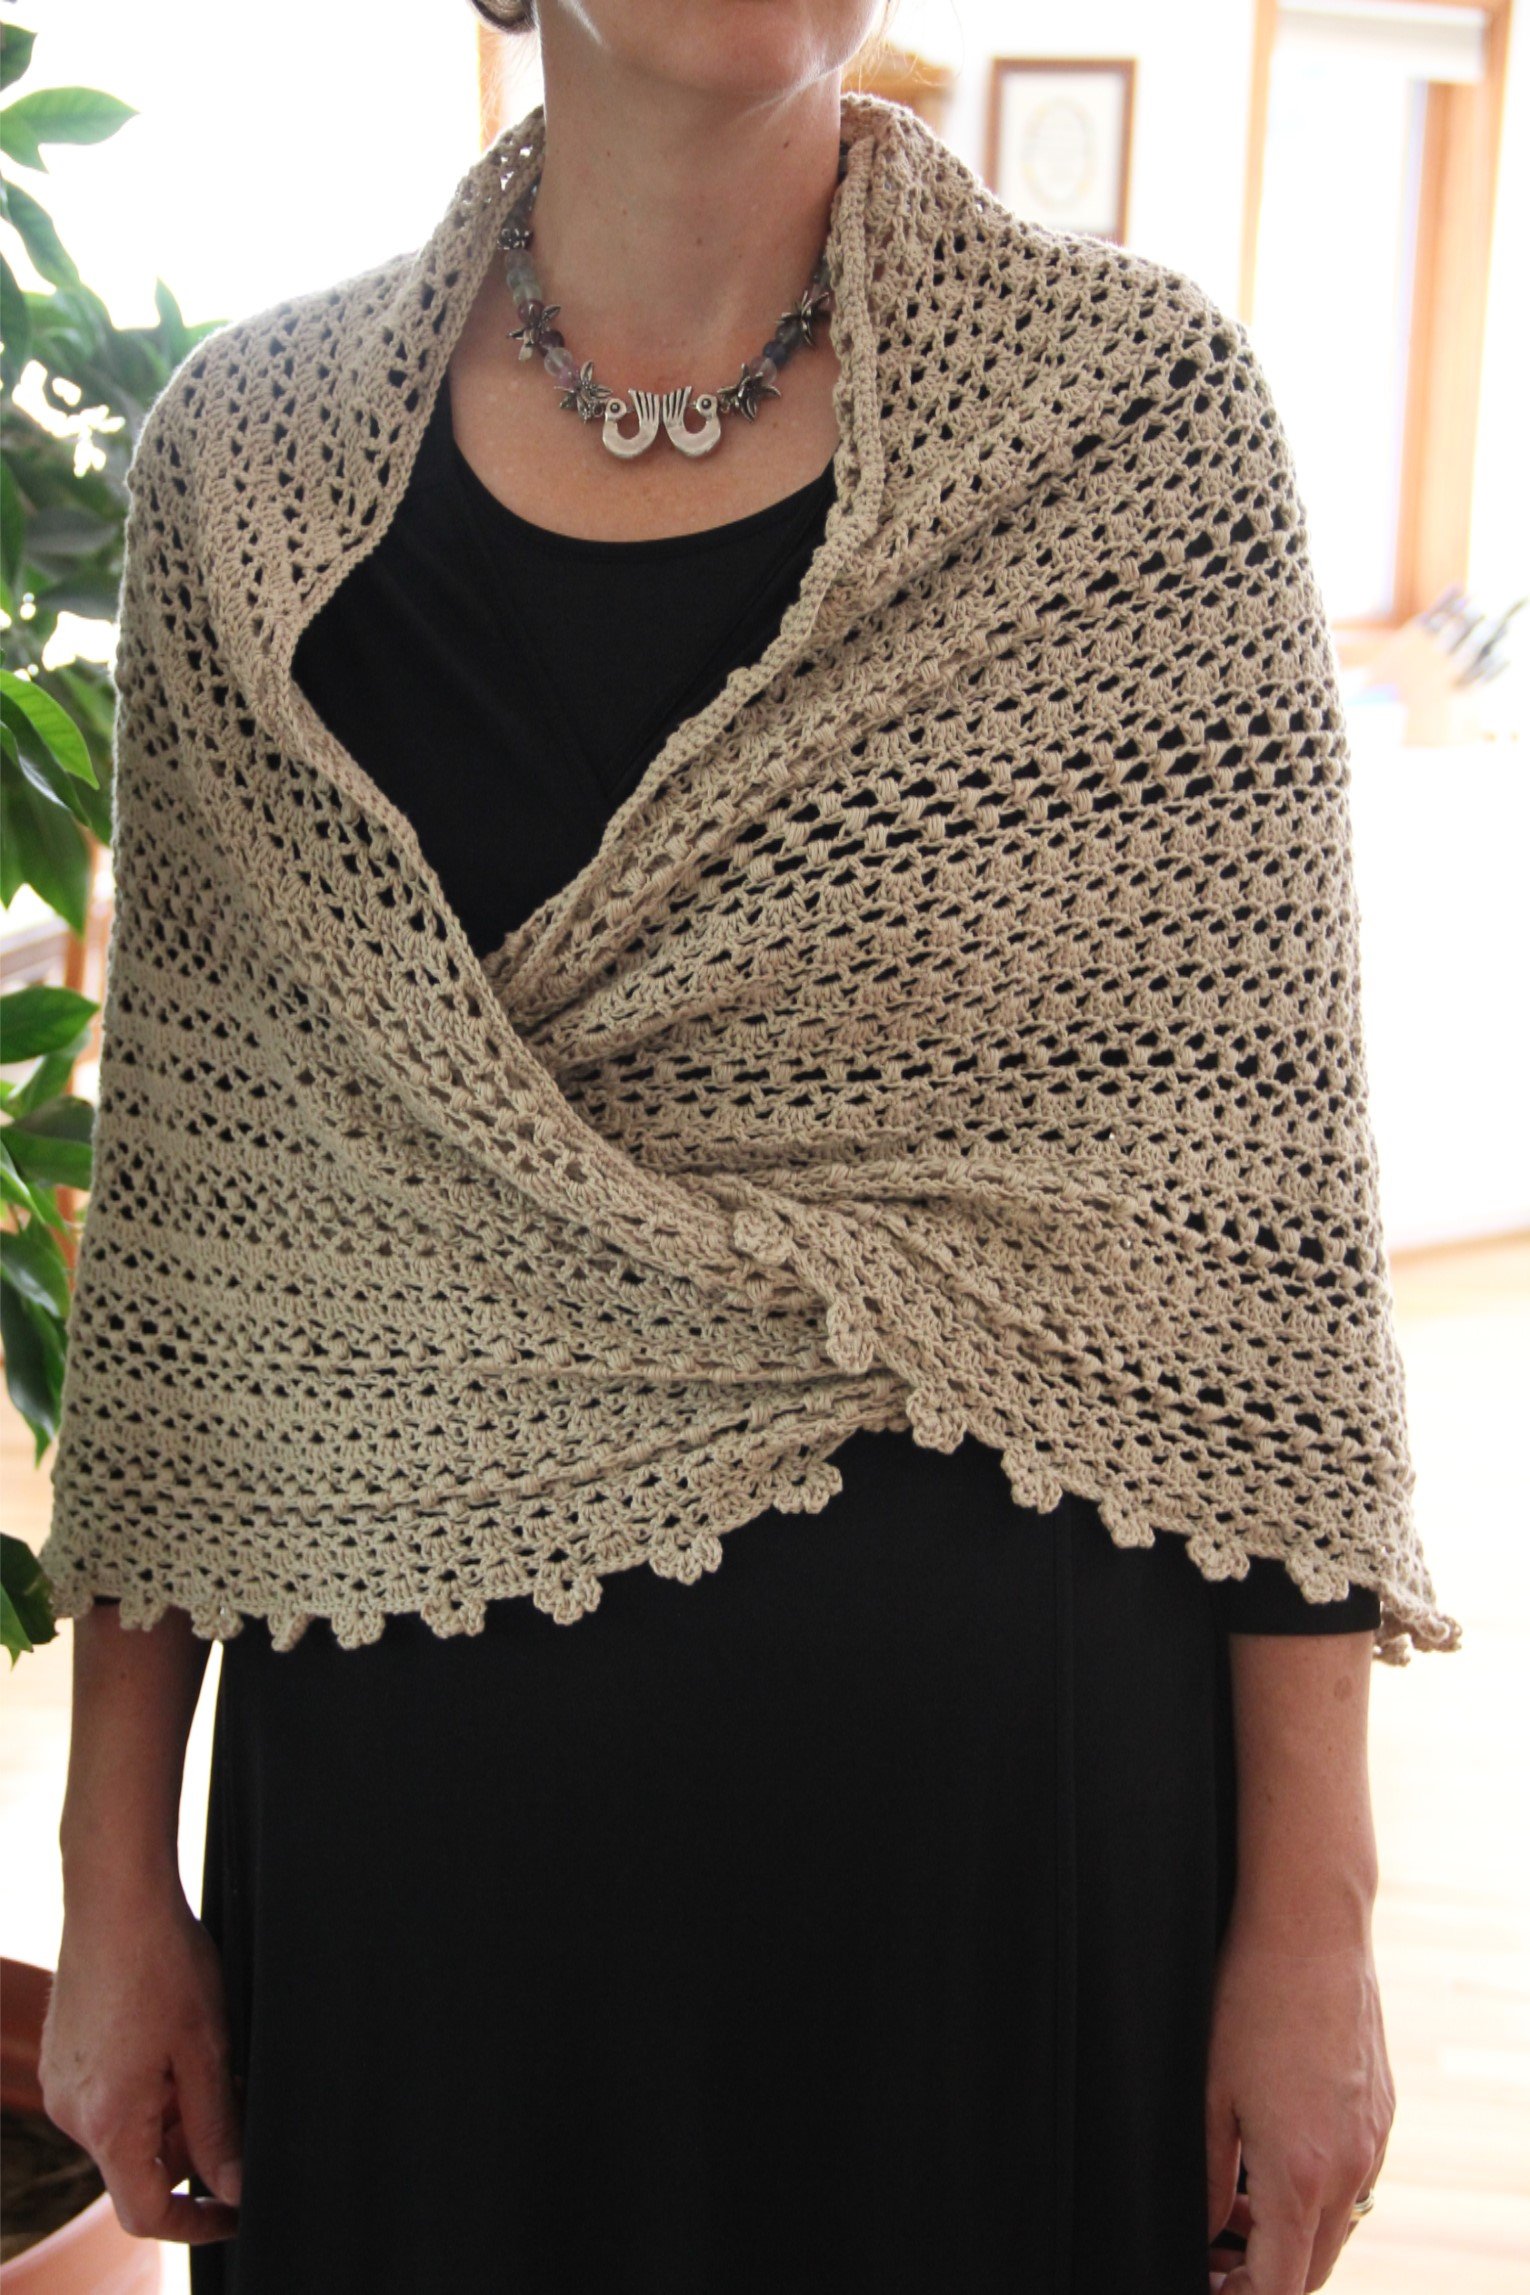 Crochet Beginner Shawl Pattern : Oatmeal Puff Shawl alipyper